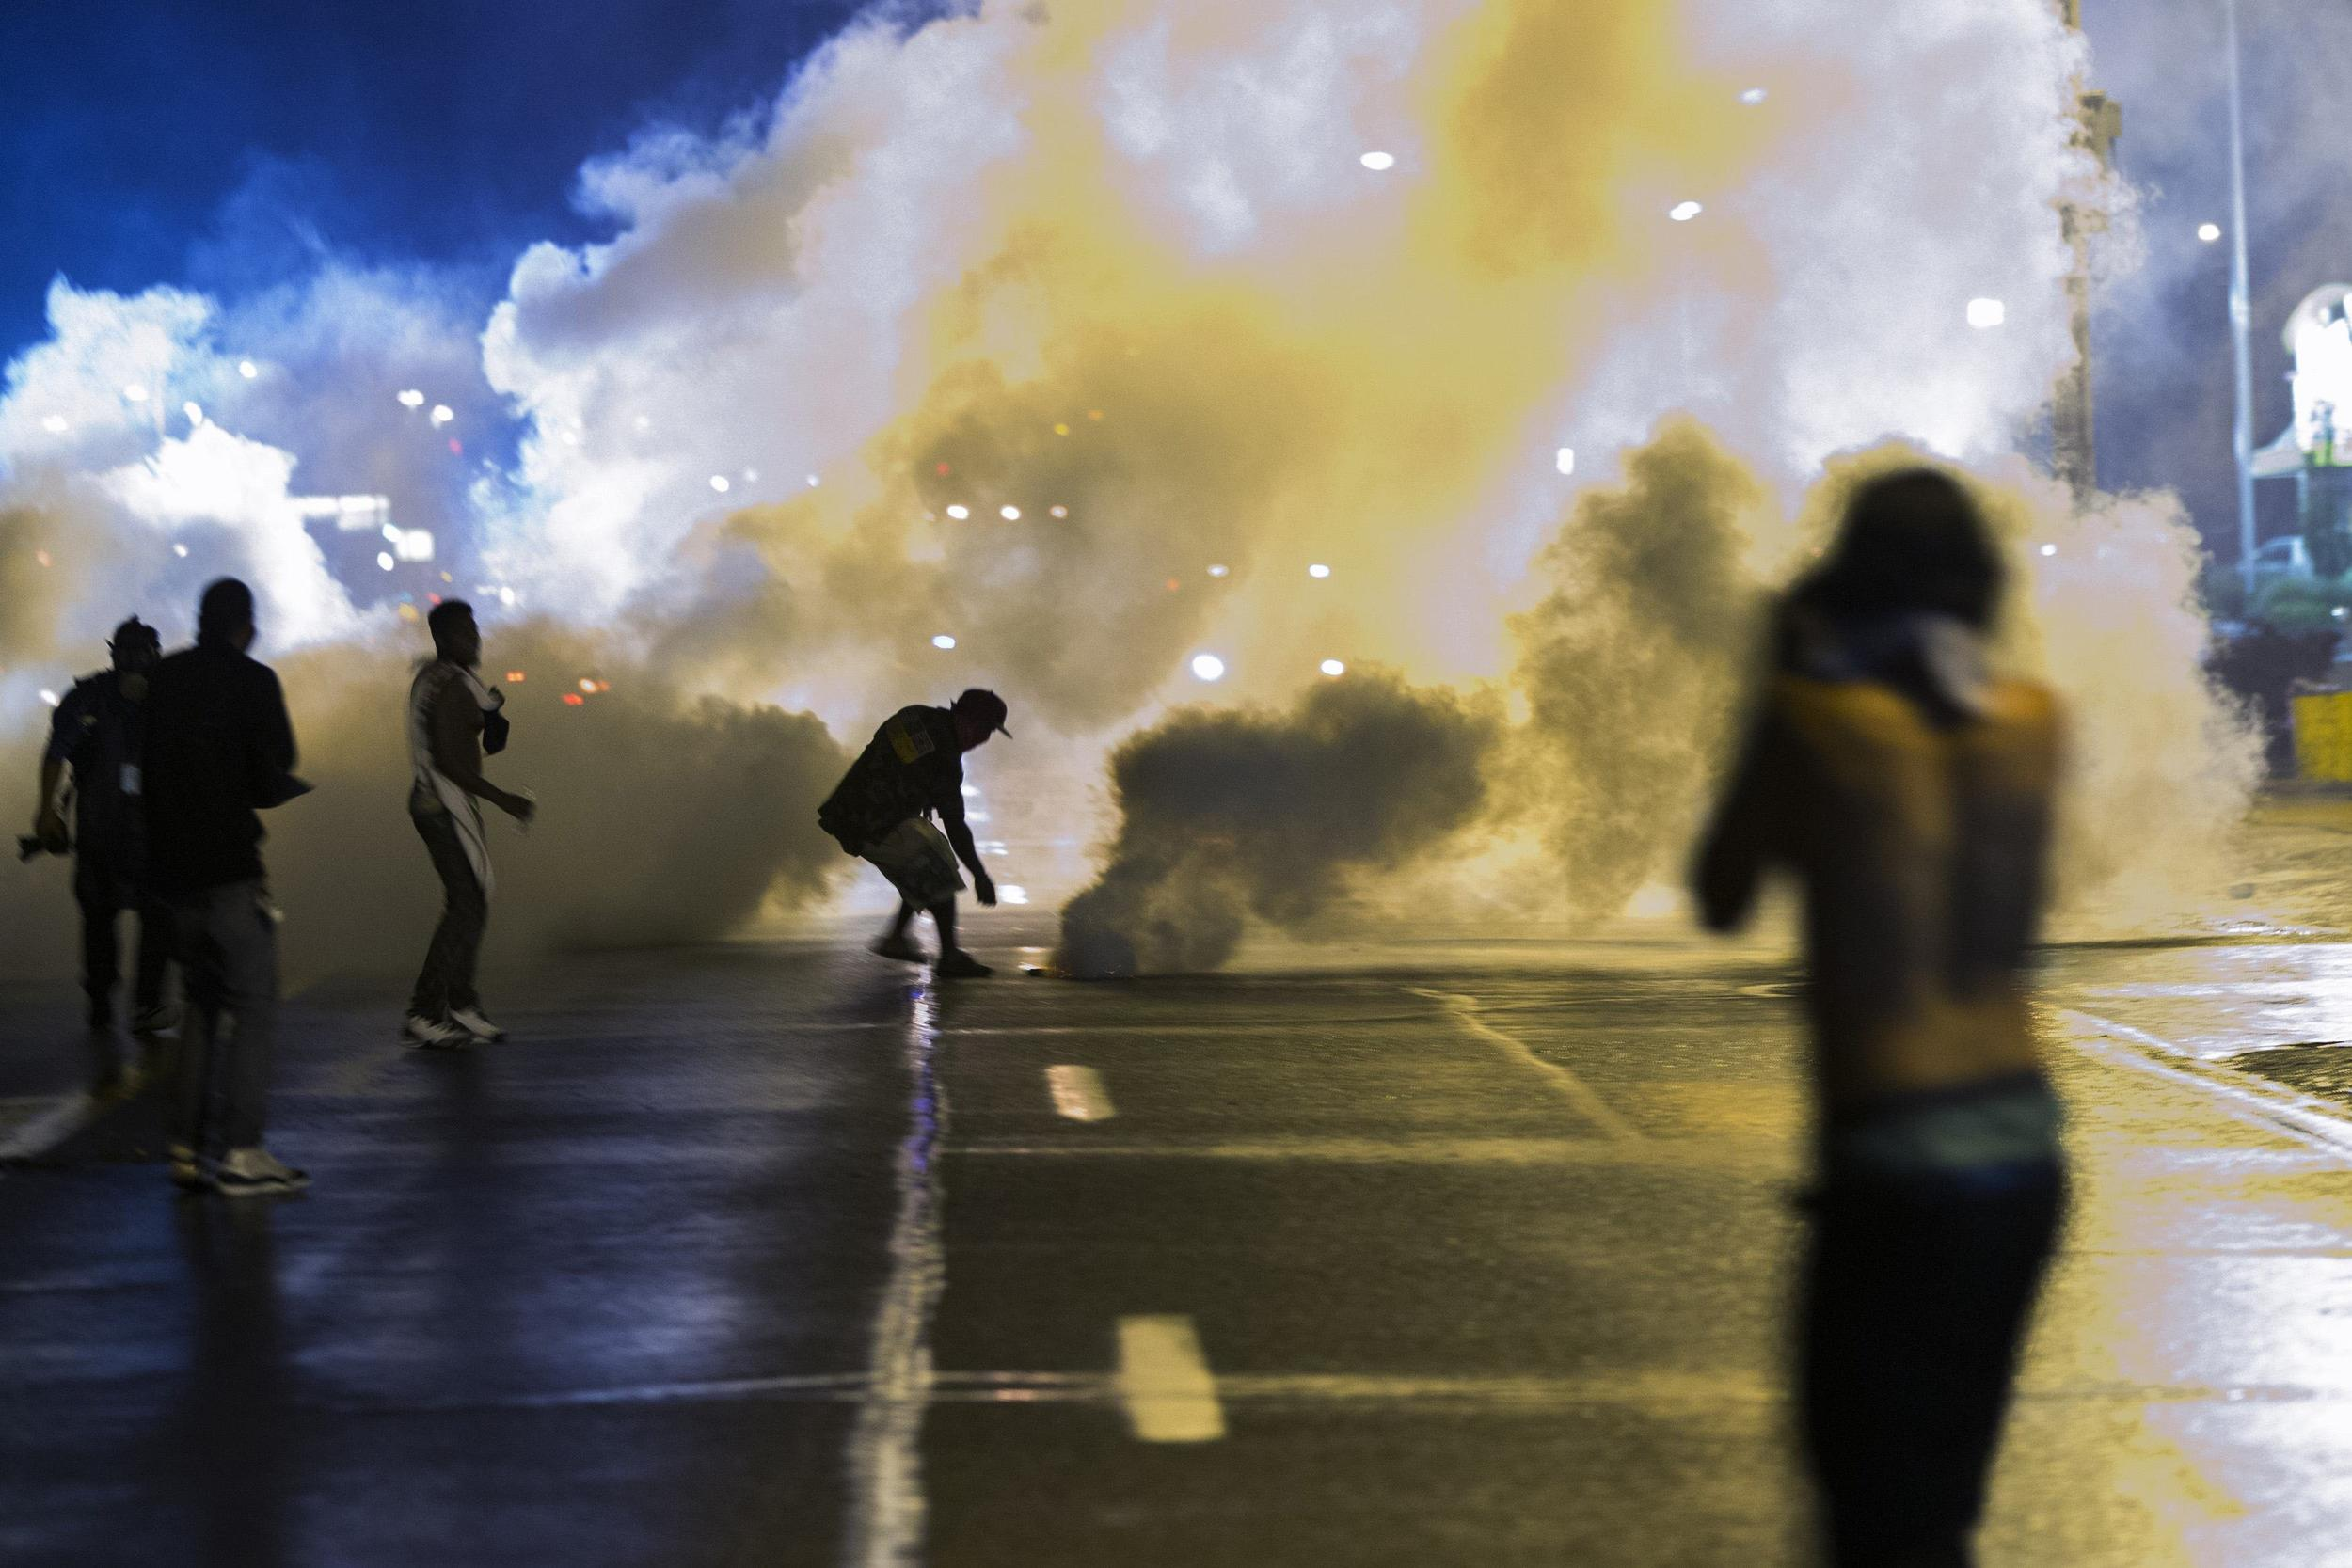 Image: A protester reaches down to throw back a smoke canister as police clear a street after the passing of a midnight curfew in Ferguson